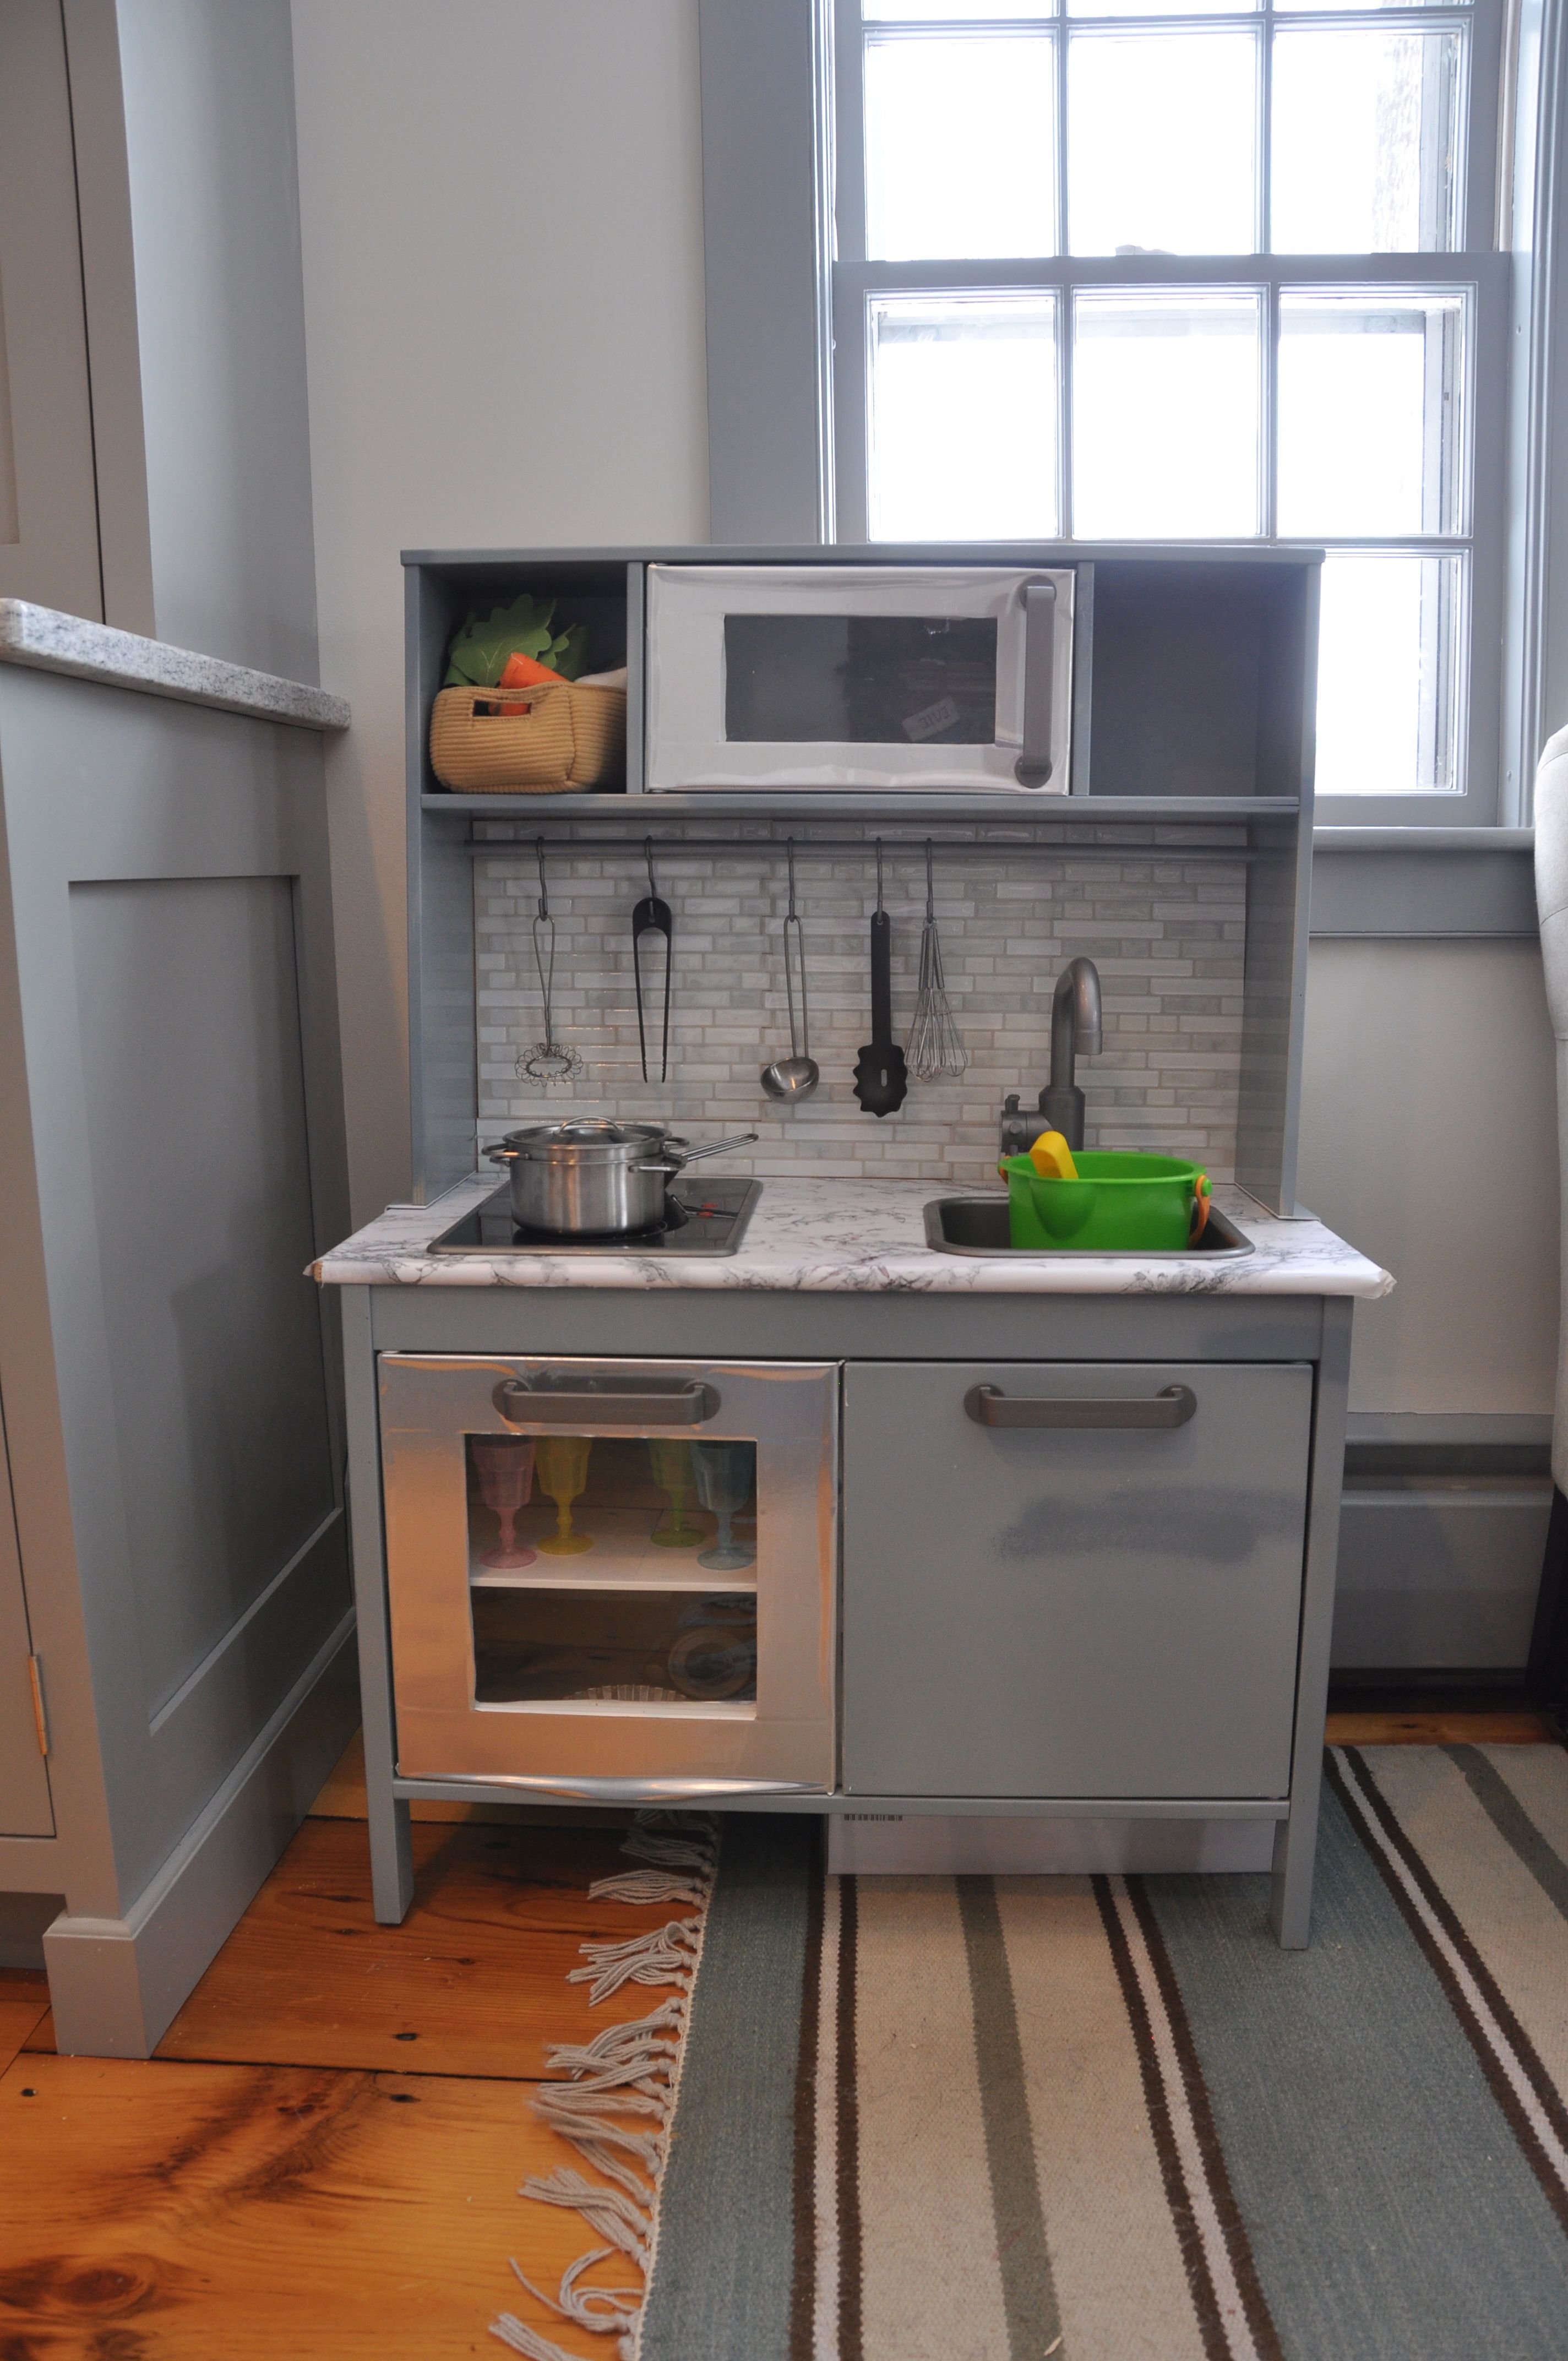 plywood on the back splash covered in sticky tiles, stainless ...